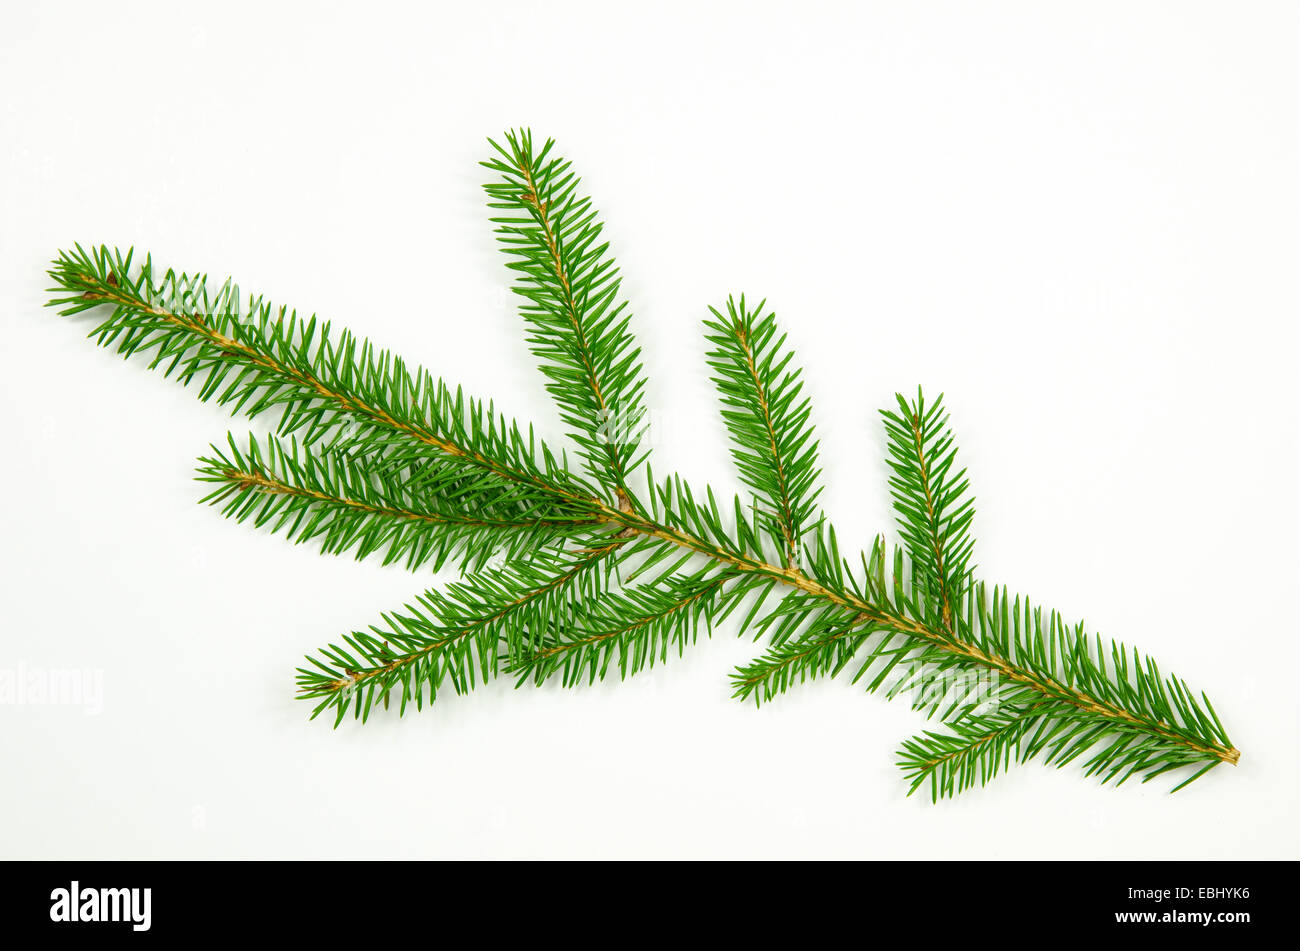 Single spruce twig a a white background - Stock Image